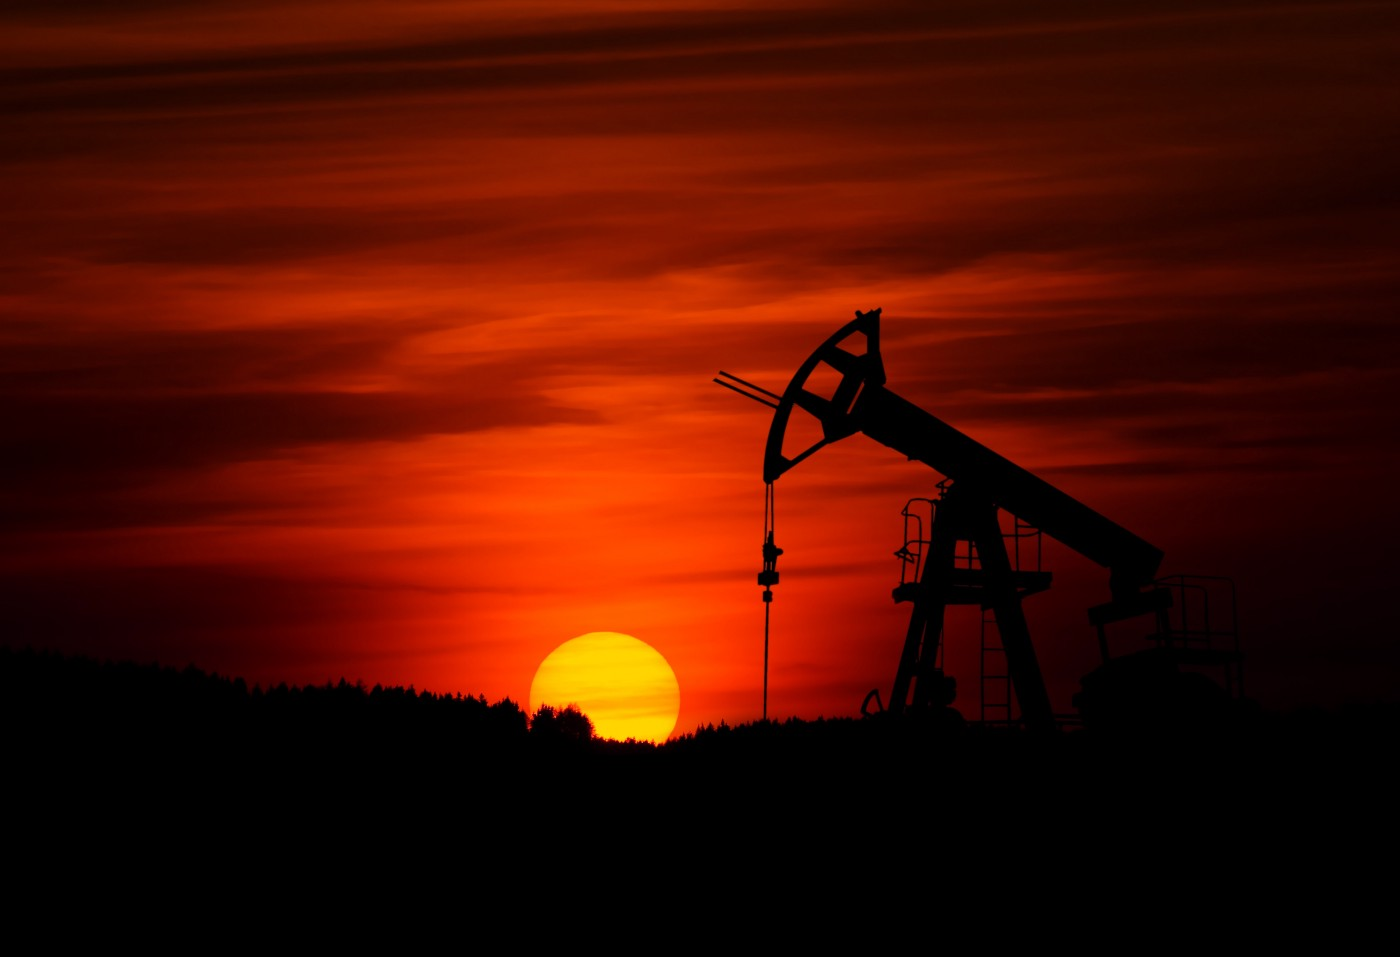 An oil rig is silhouetted against a setting sun